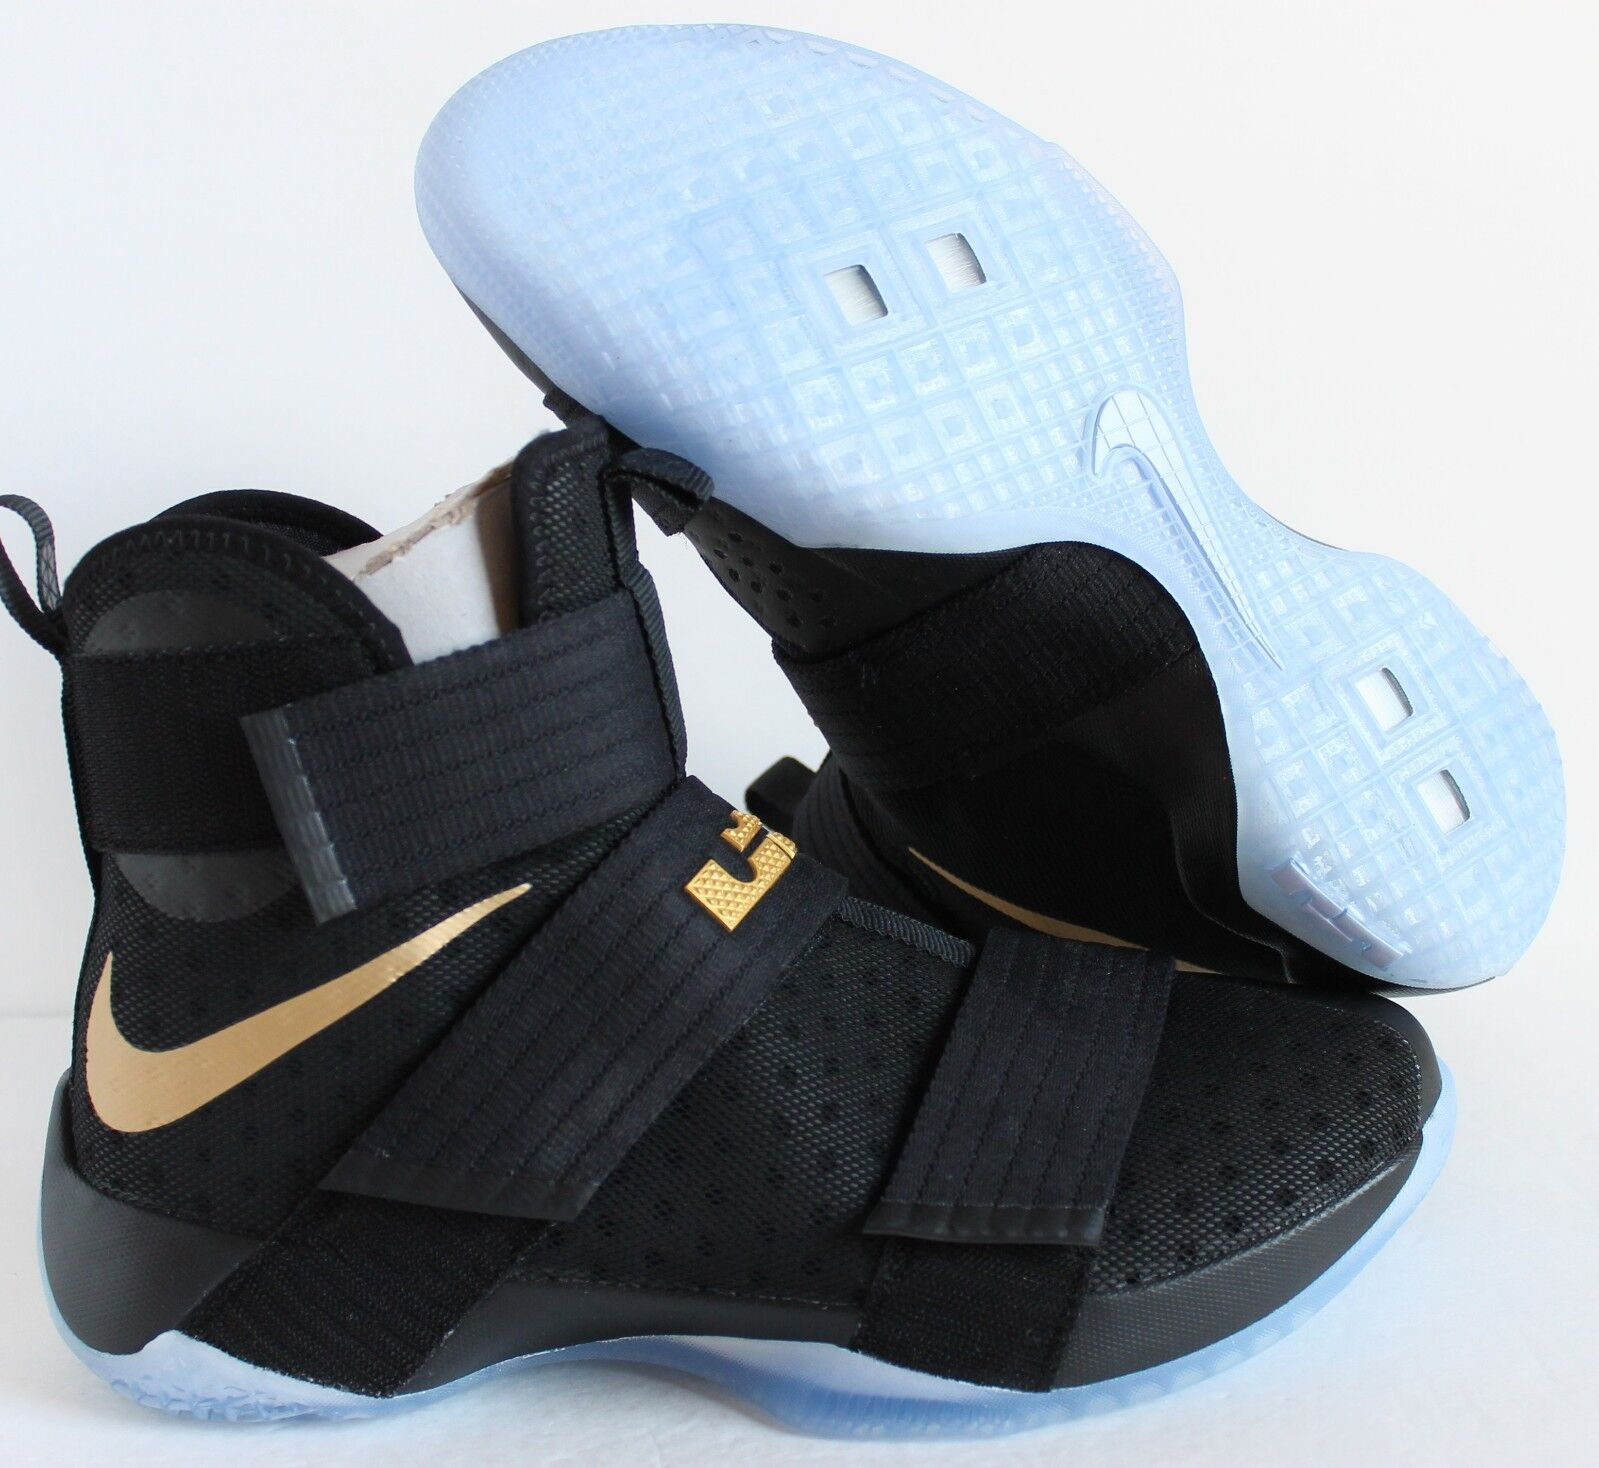 NIKE iD ZOOM LEBRON SOLDIER 10 CHAMPIONSHIP BLACK GOLD SZ 11.5 [885682-991]